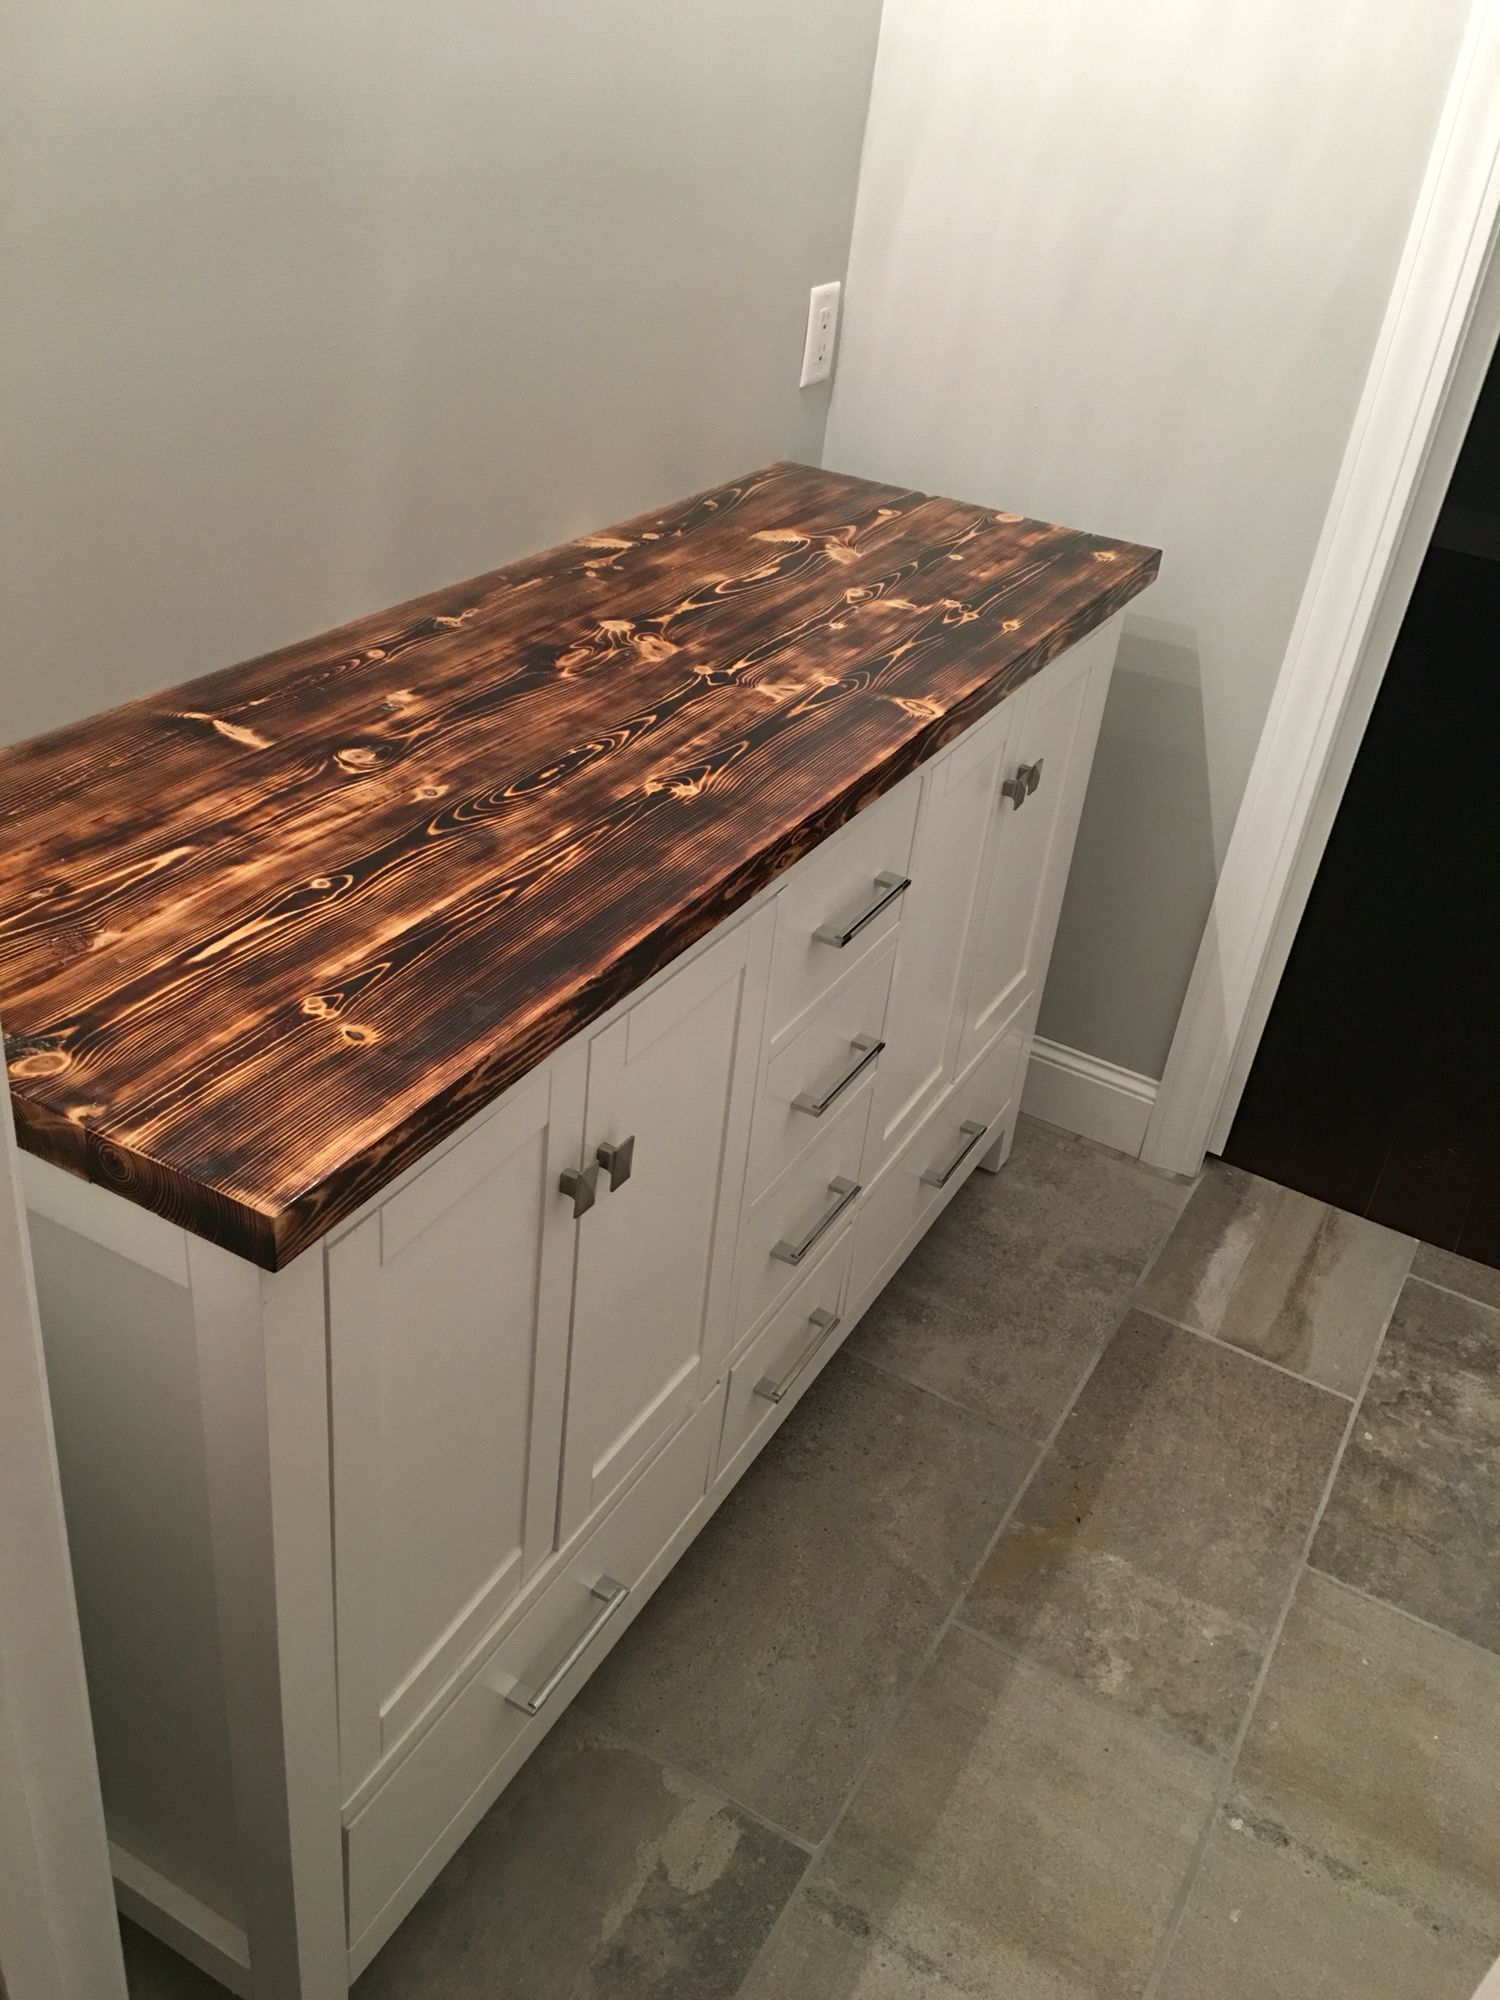 Wood Burned Countertop Love Christopher Jones Designs In 2020